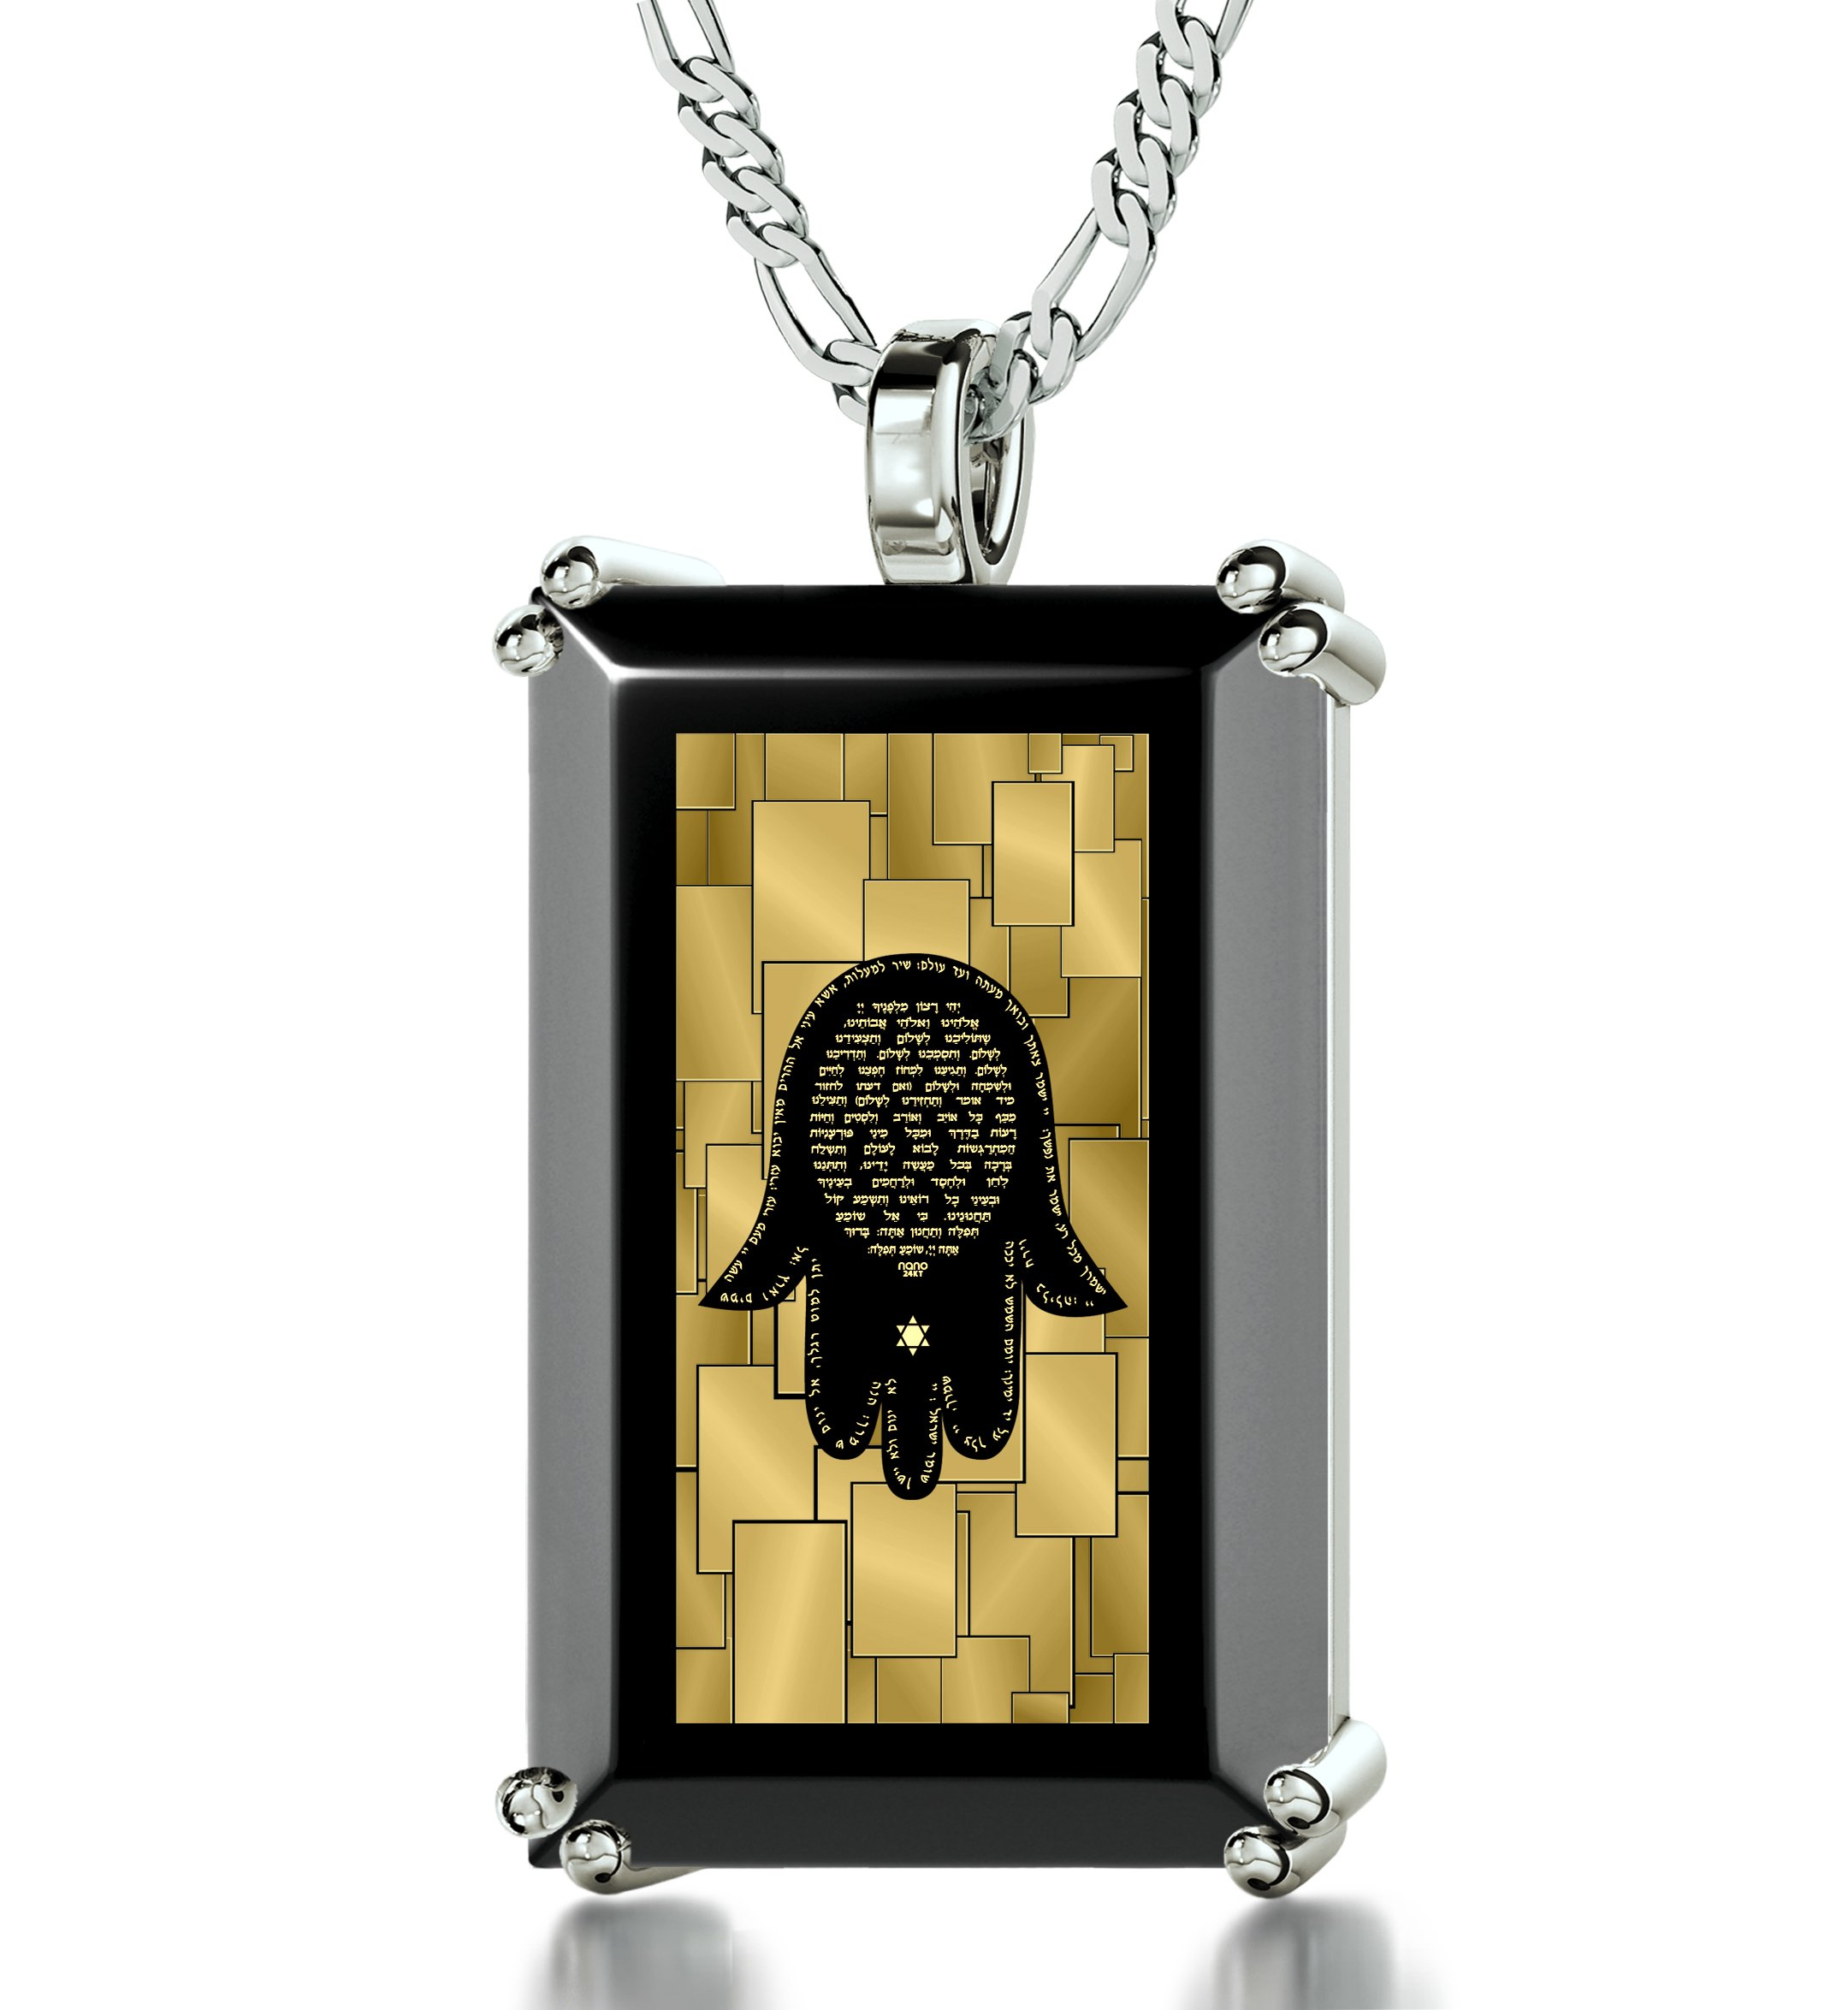 925 Silver Jewish Hamsa Necklace Inscribed in Hebrew with Prayer For Safe Travel in 24k Gold on Onyx Stone Pendant, 20''